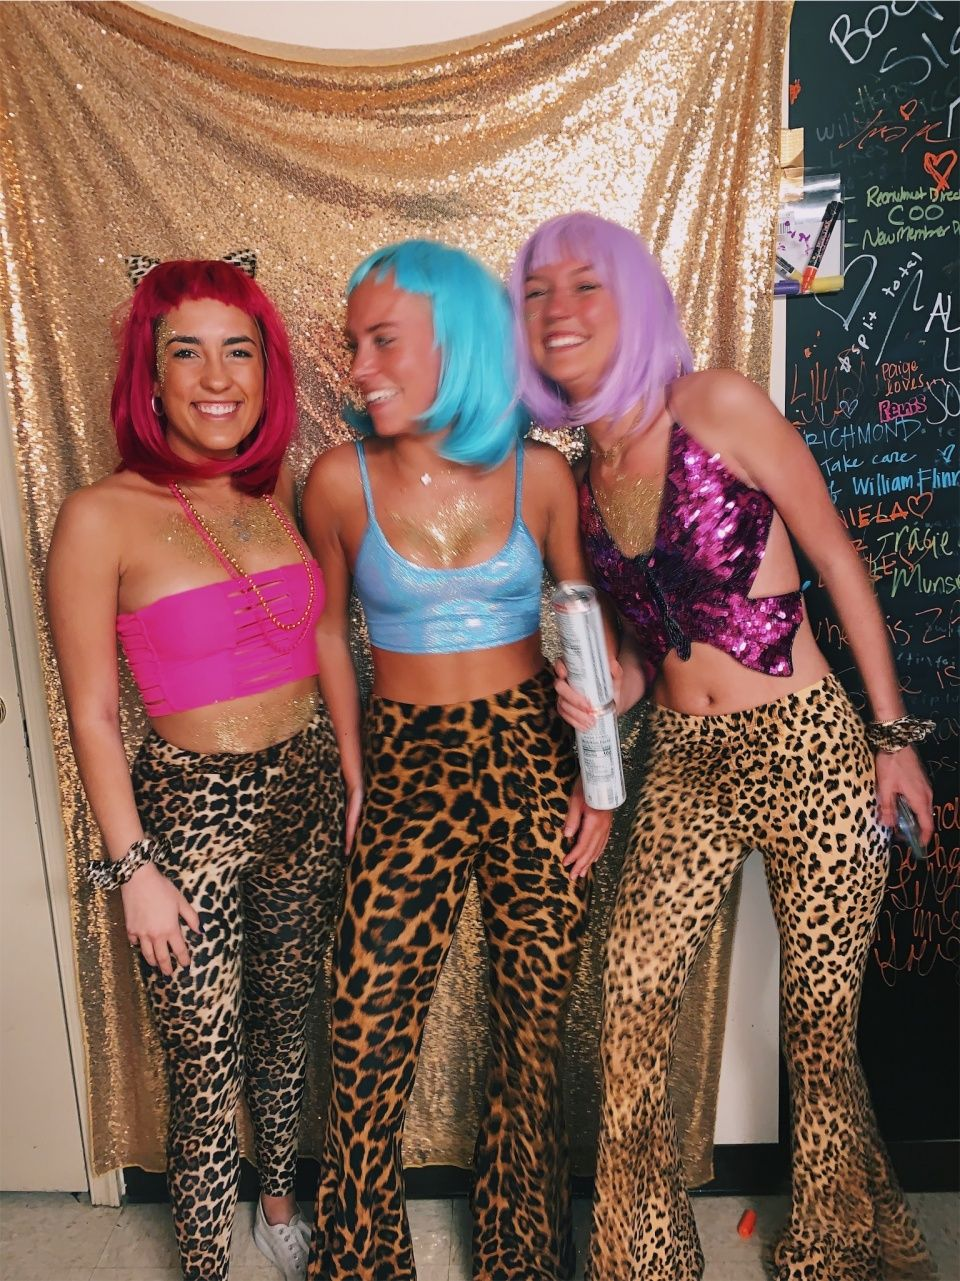 Dvc Halloween Party 2020 Gallery | dvc | VSCO in 2020 | Halloween costume outfits